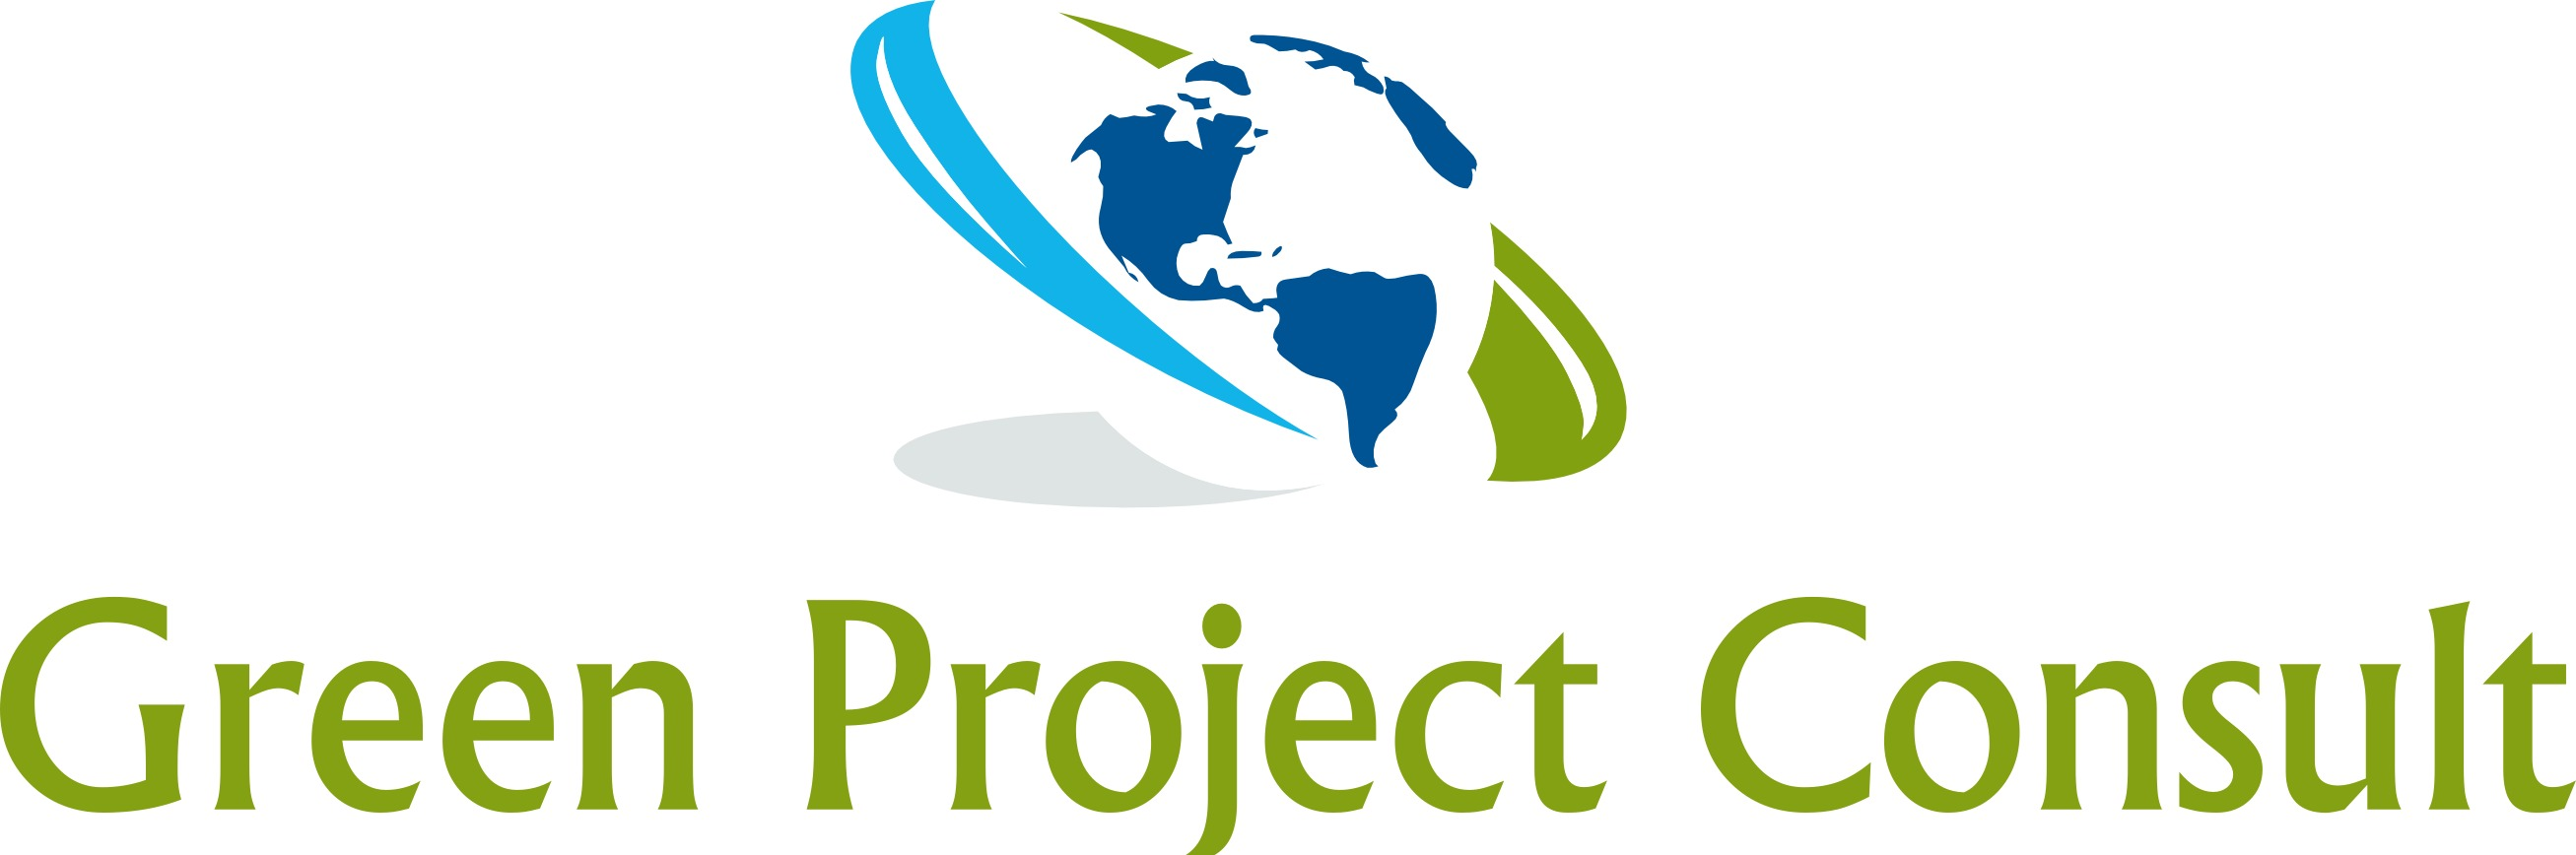 greenprojectconsult.de